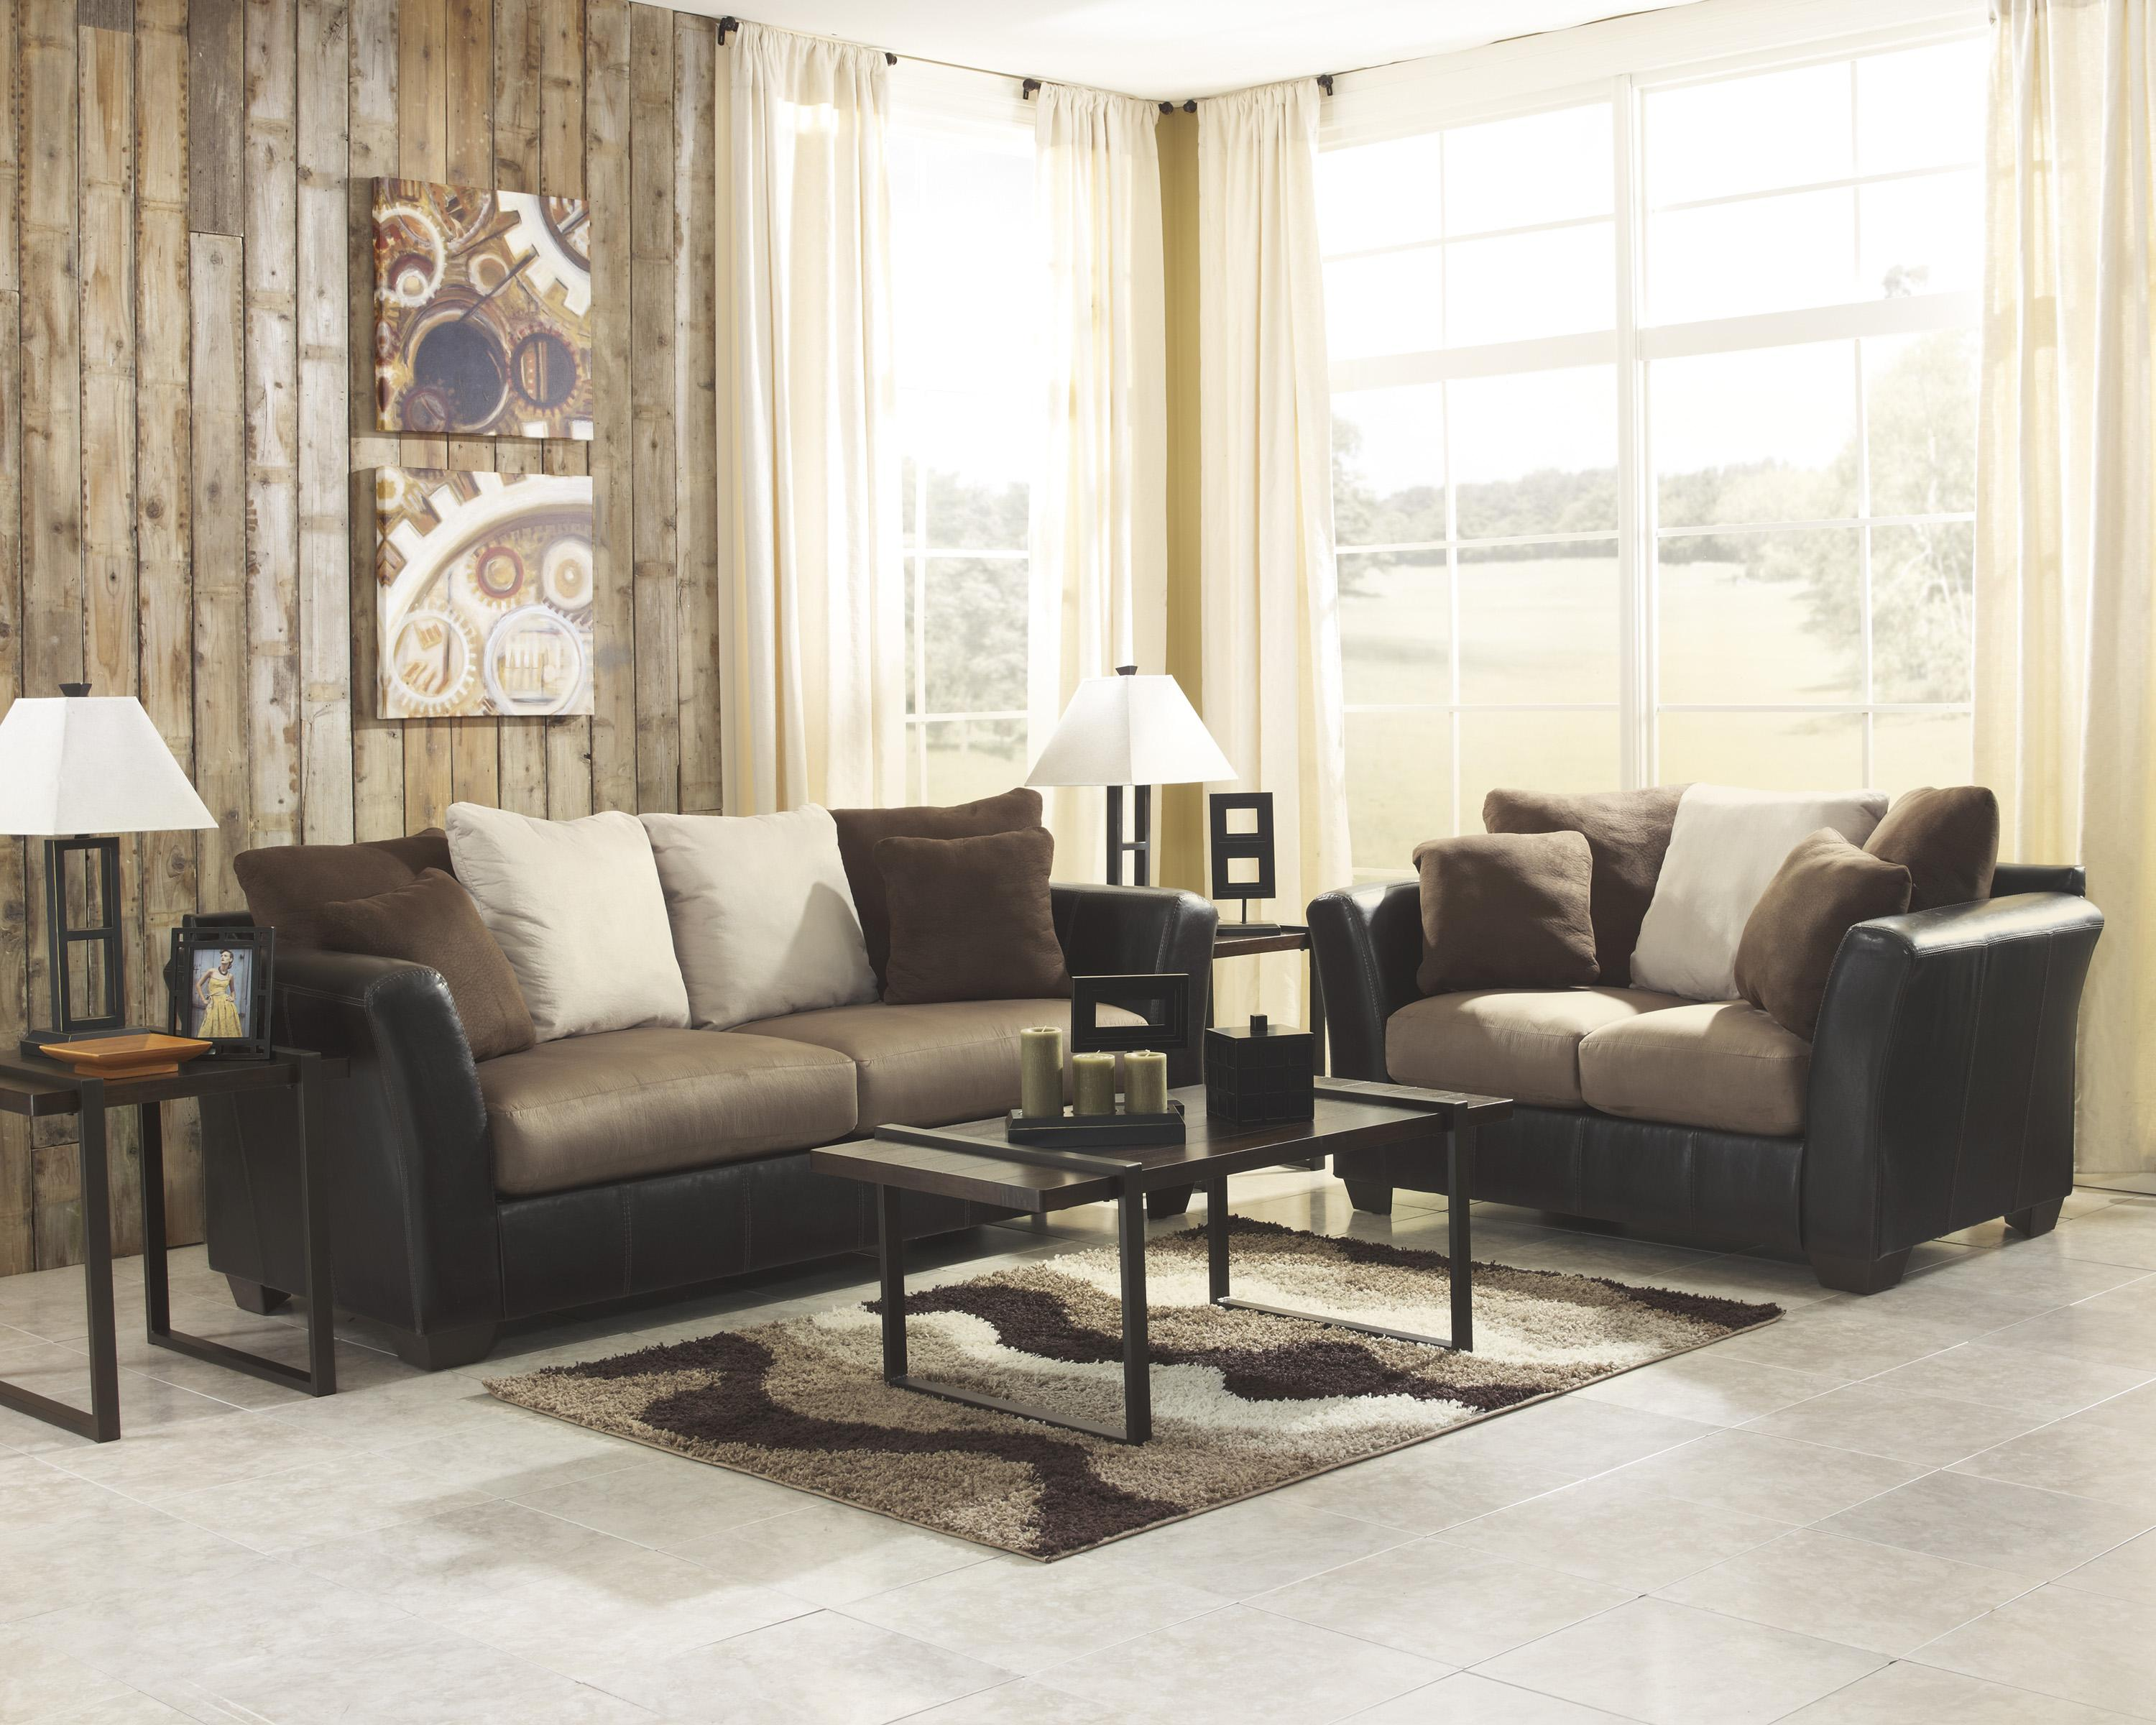 Benchcraft Masoli - Mocha Stationary Living Room Group - Item Number: 14201 Living Room Group 1